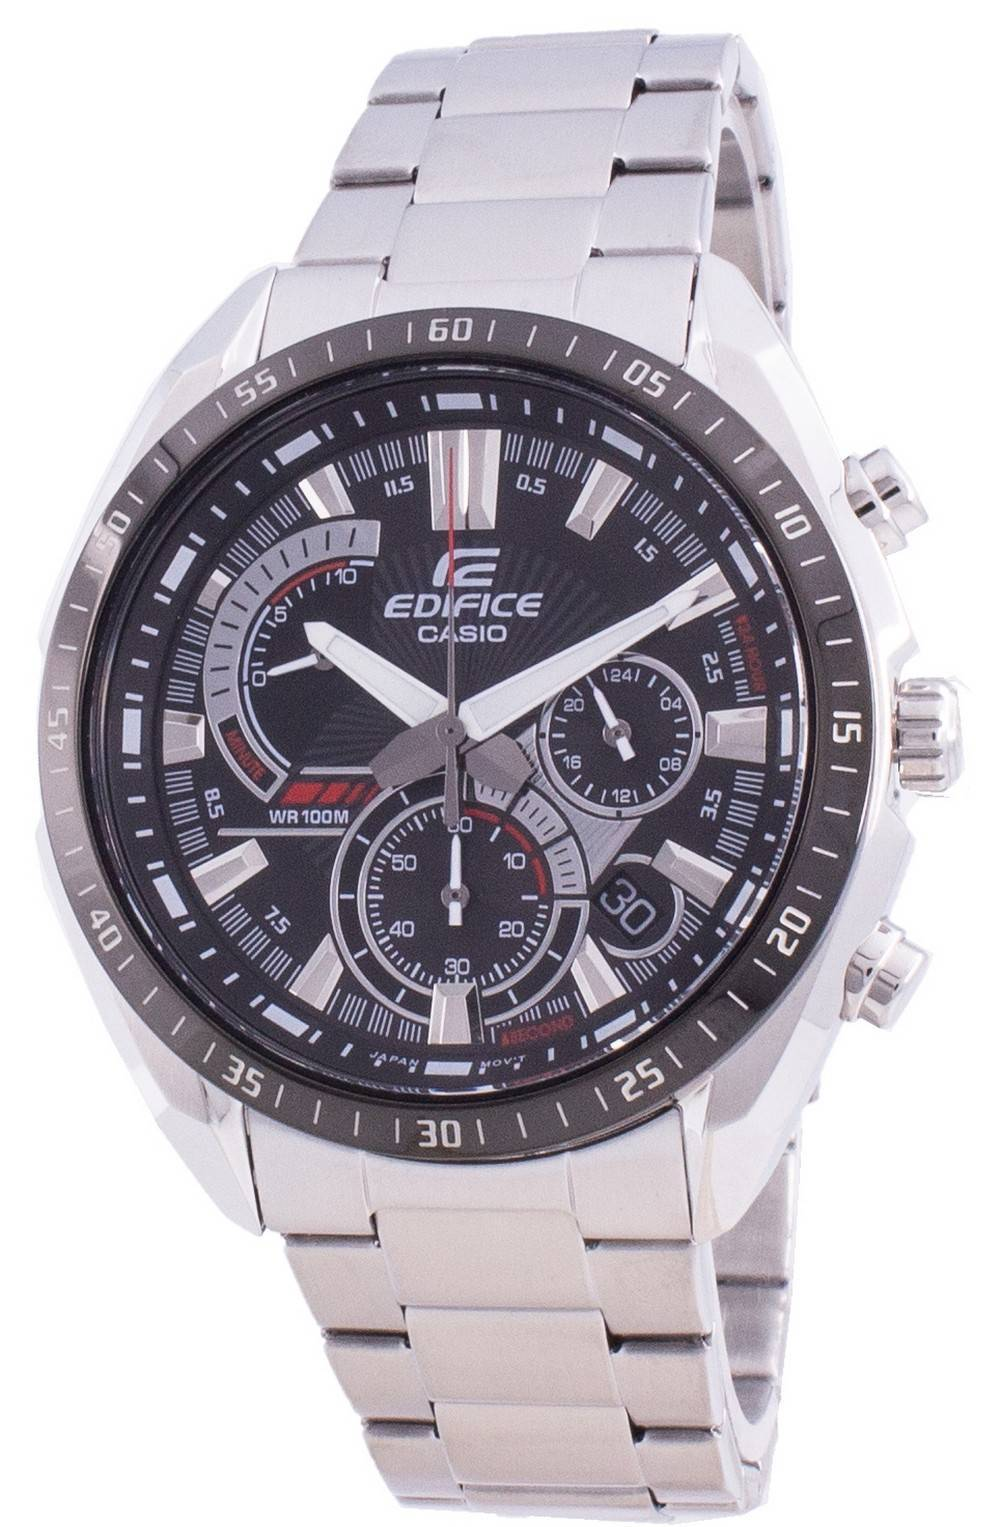 Edifice EFR-570DB-1AV Quartz Chronograph Men's Watch